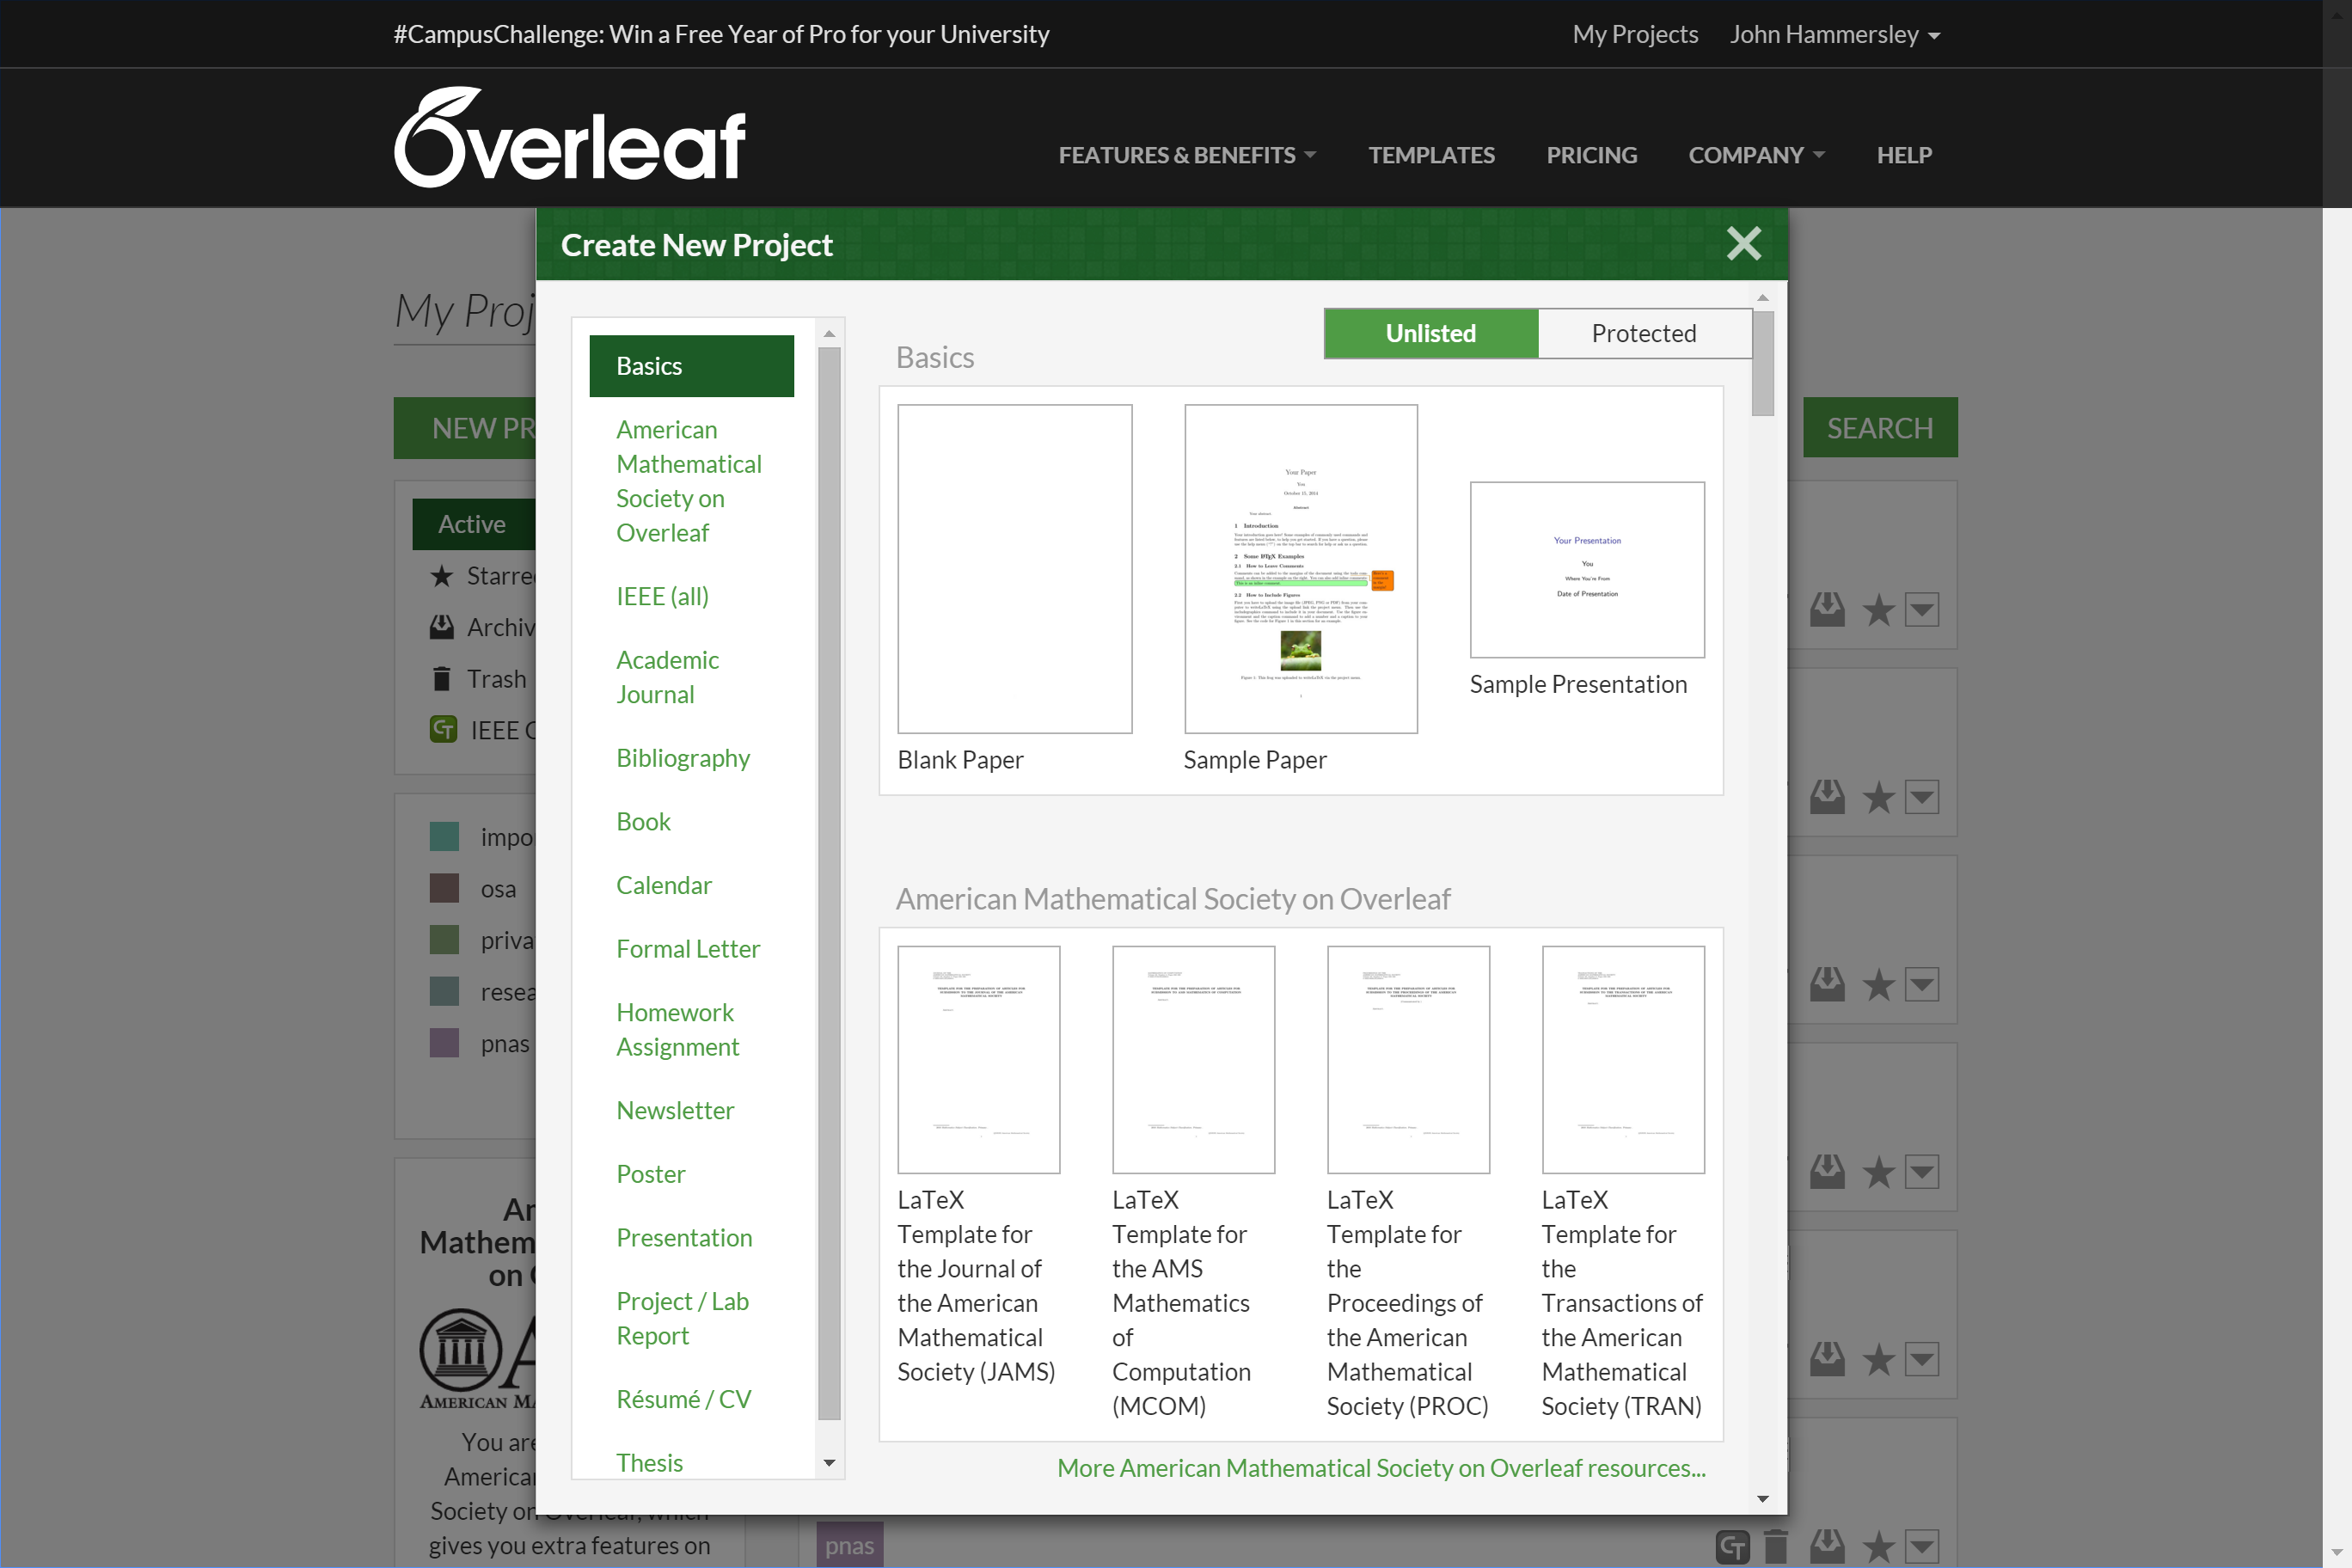 Overleaf University and Society templates featured in new project modal